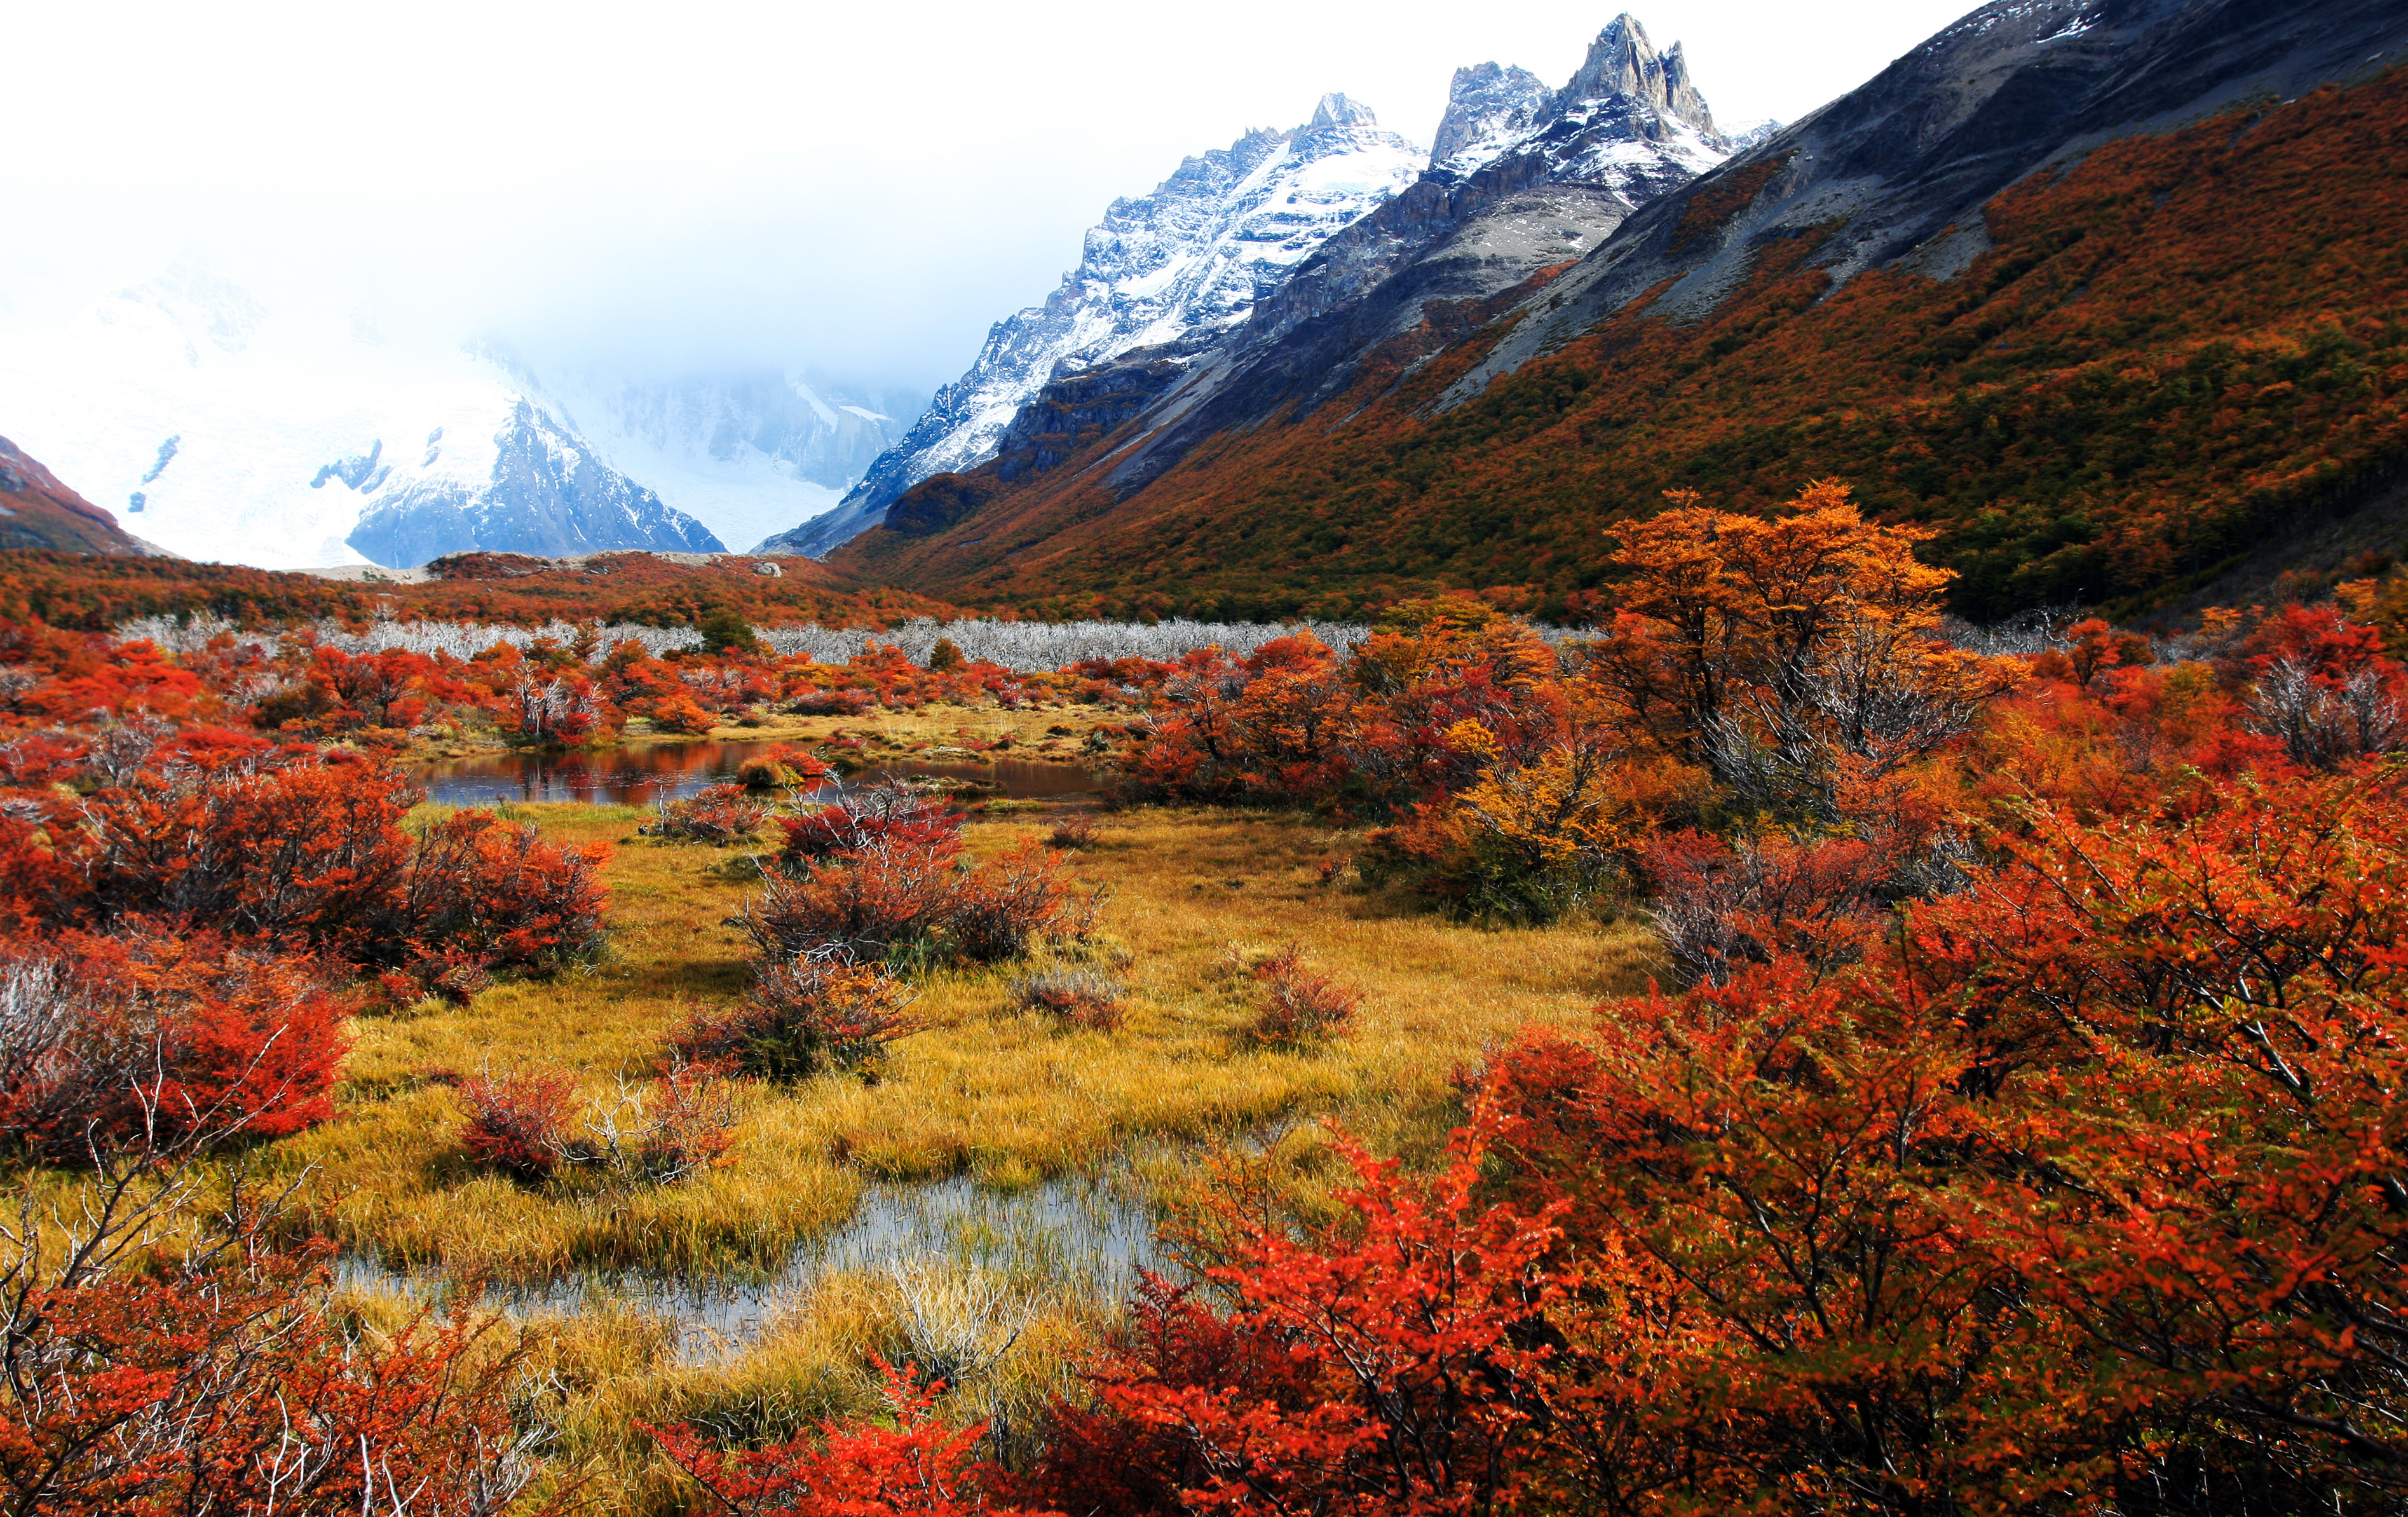 Colourful plants in Autumn in Patagonia